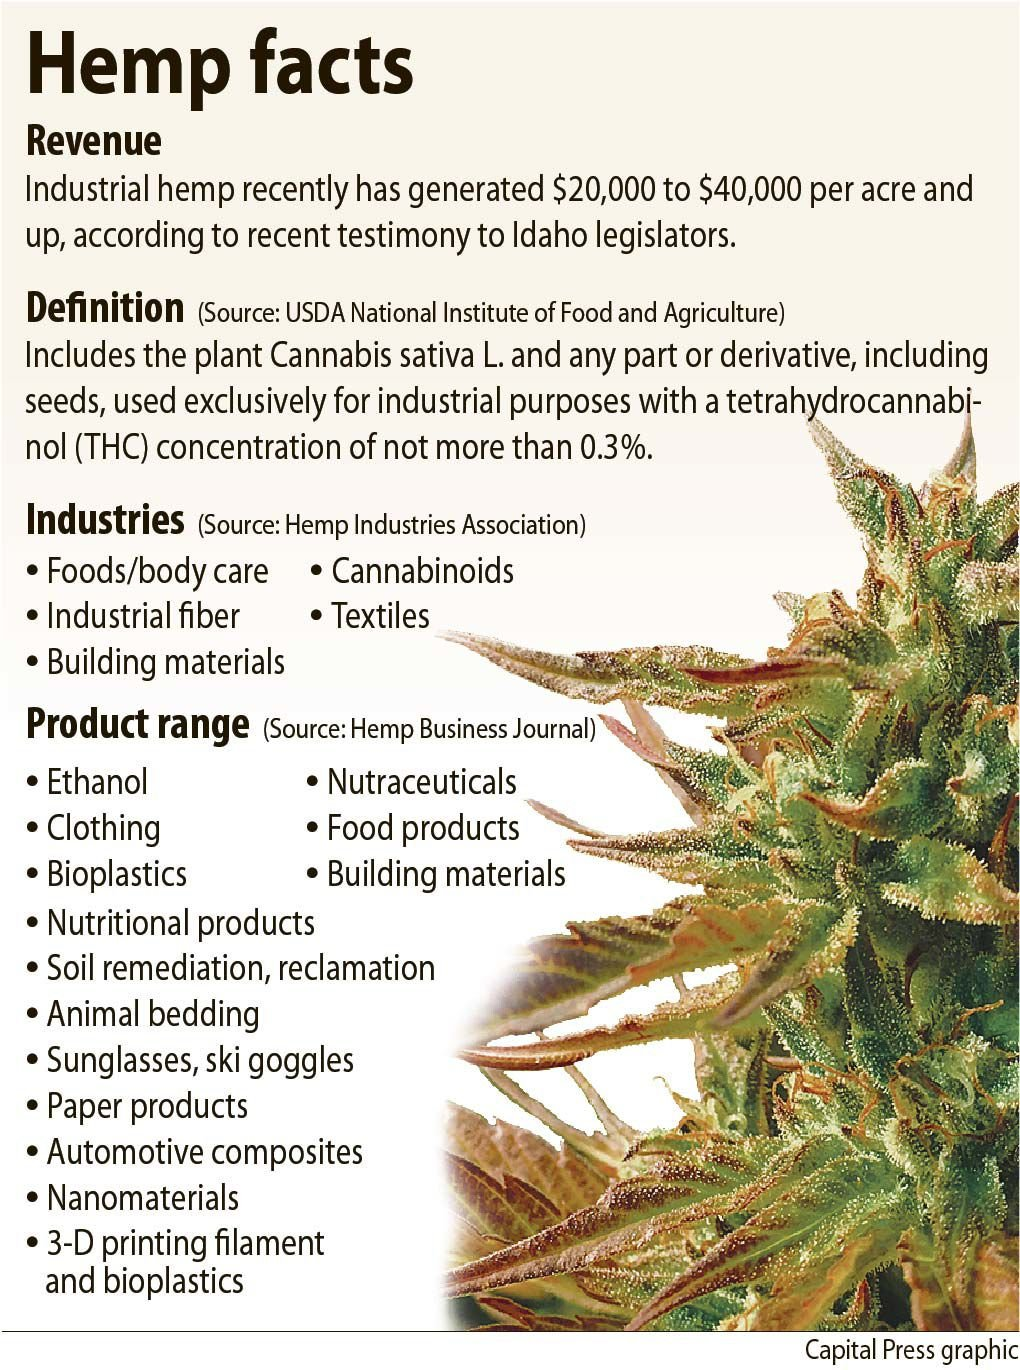 Hemp gains ground among farmers | Profit Center | capitalpress com